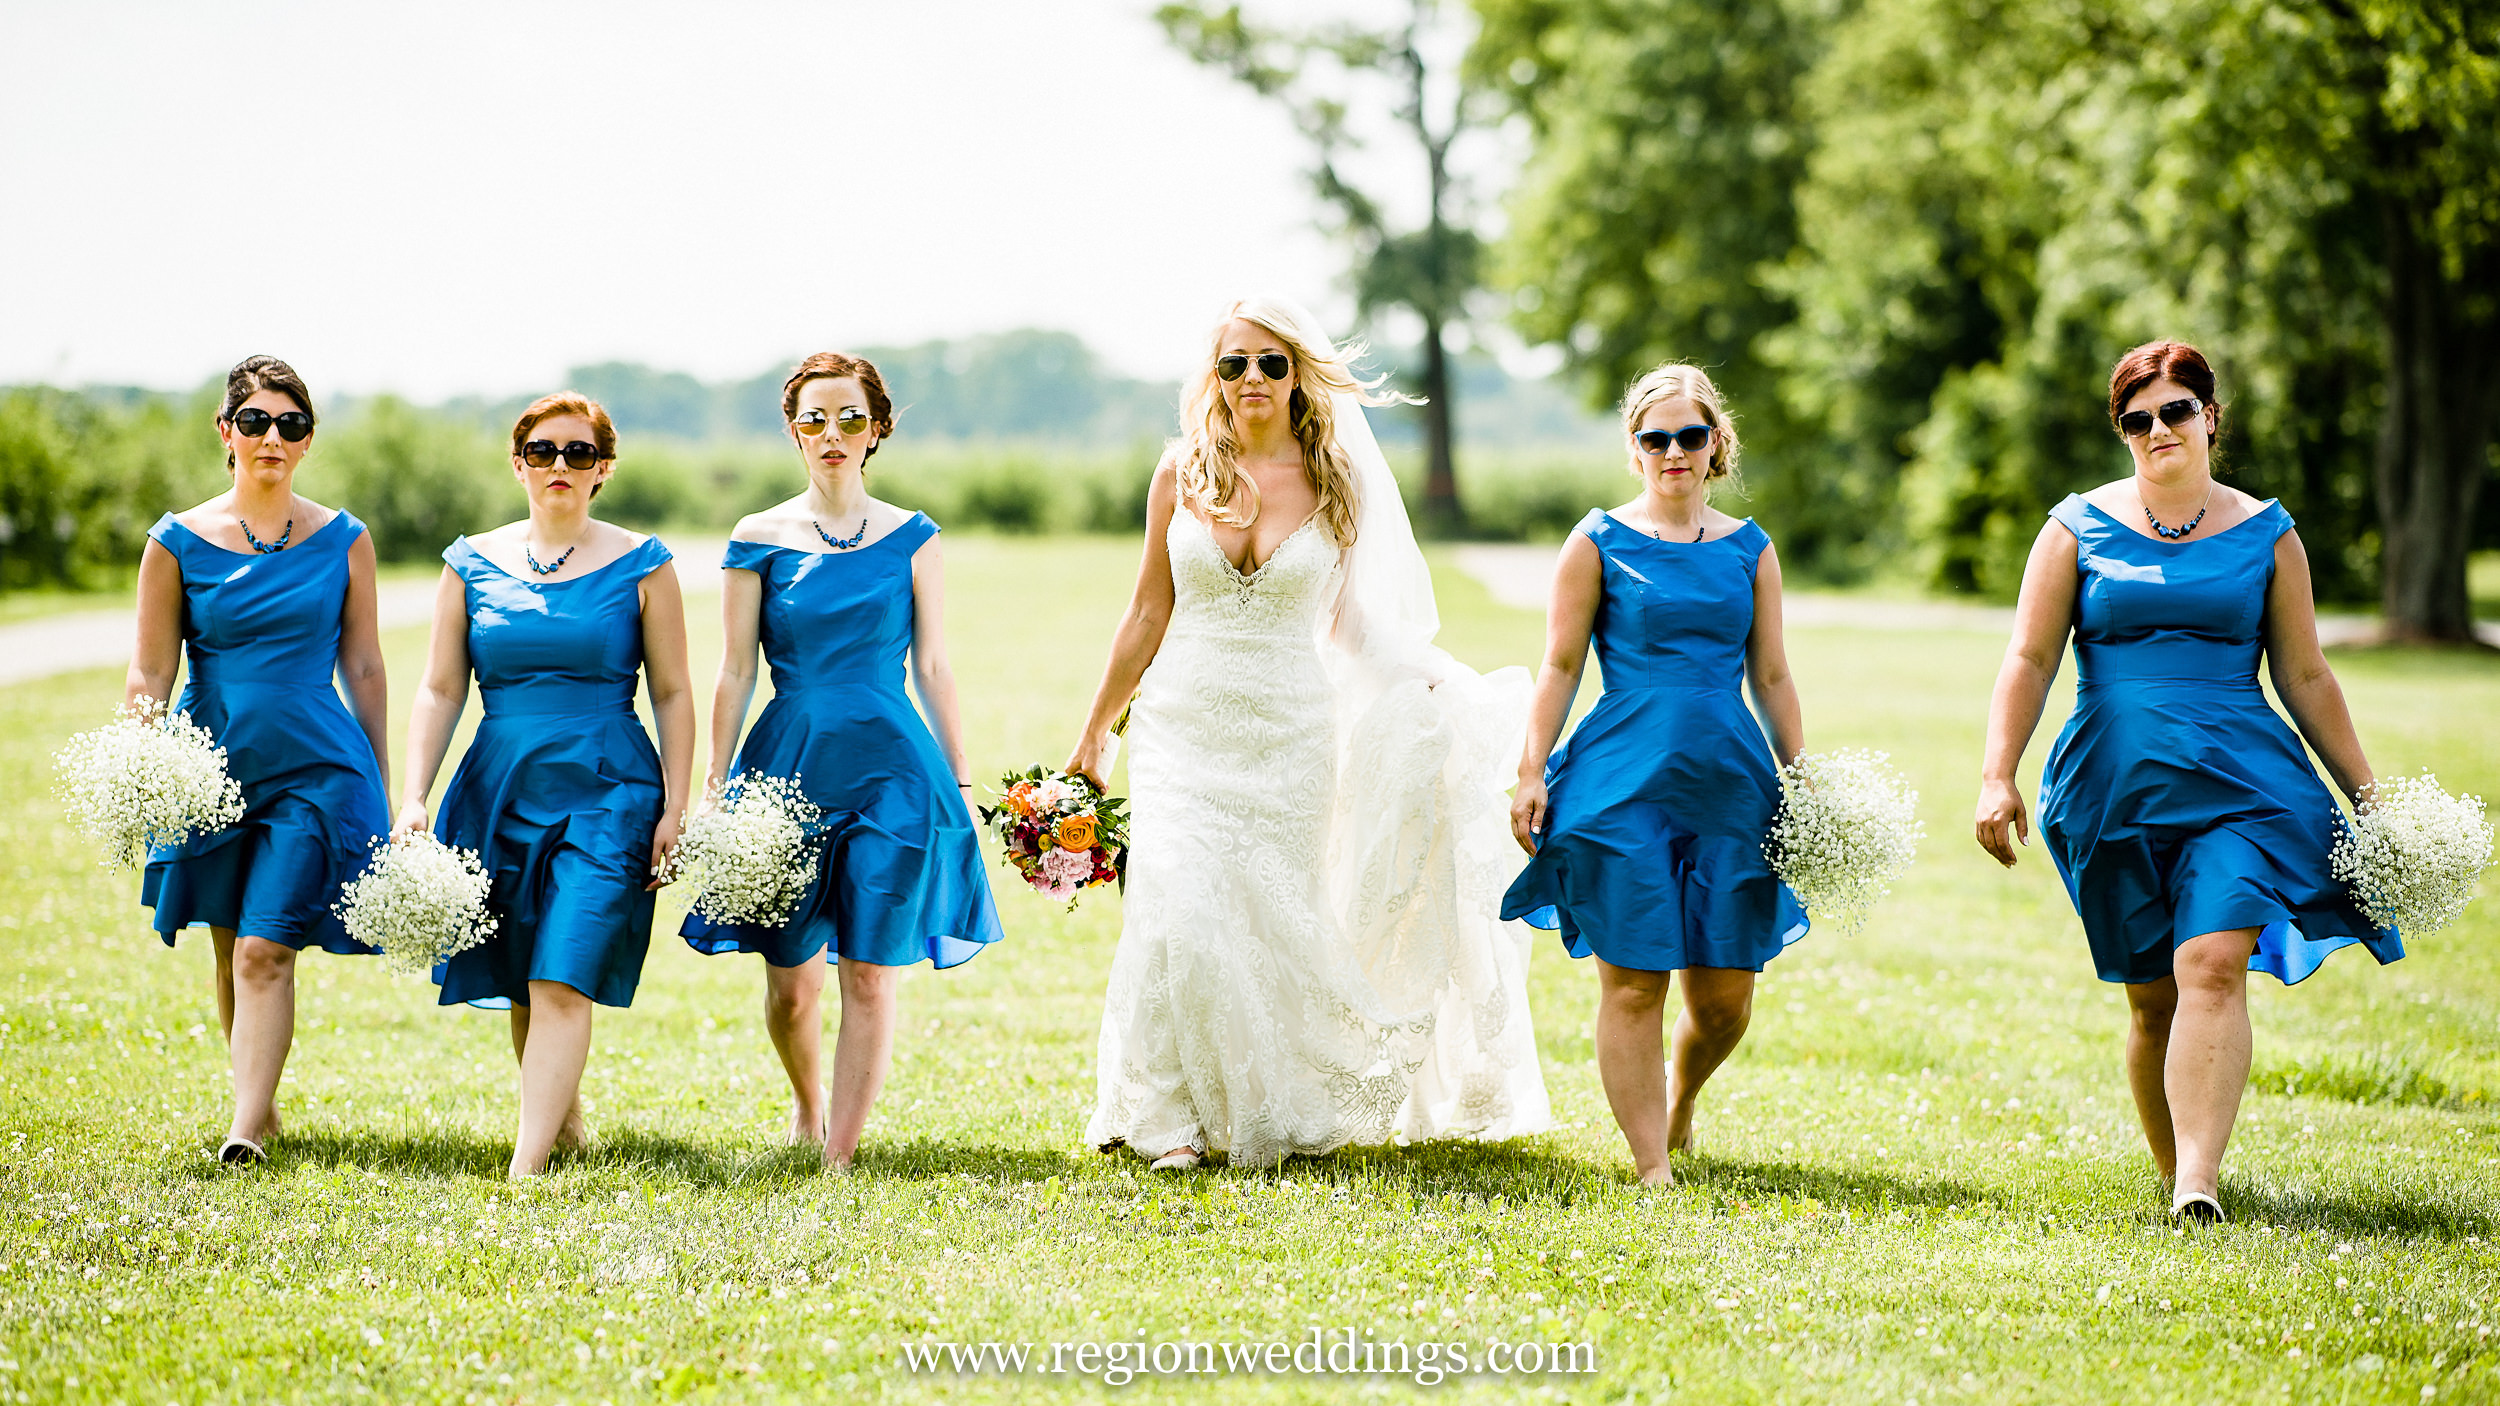 A gang of bridesmaids rushes toward the camera at County Line Orchard.